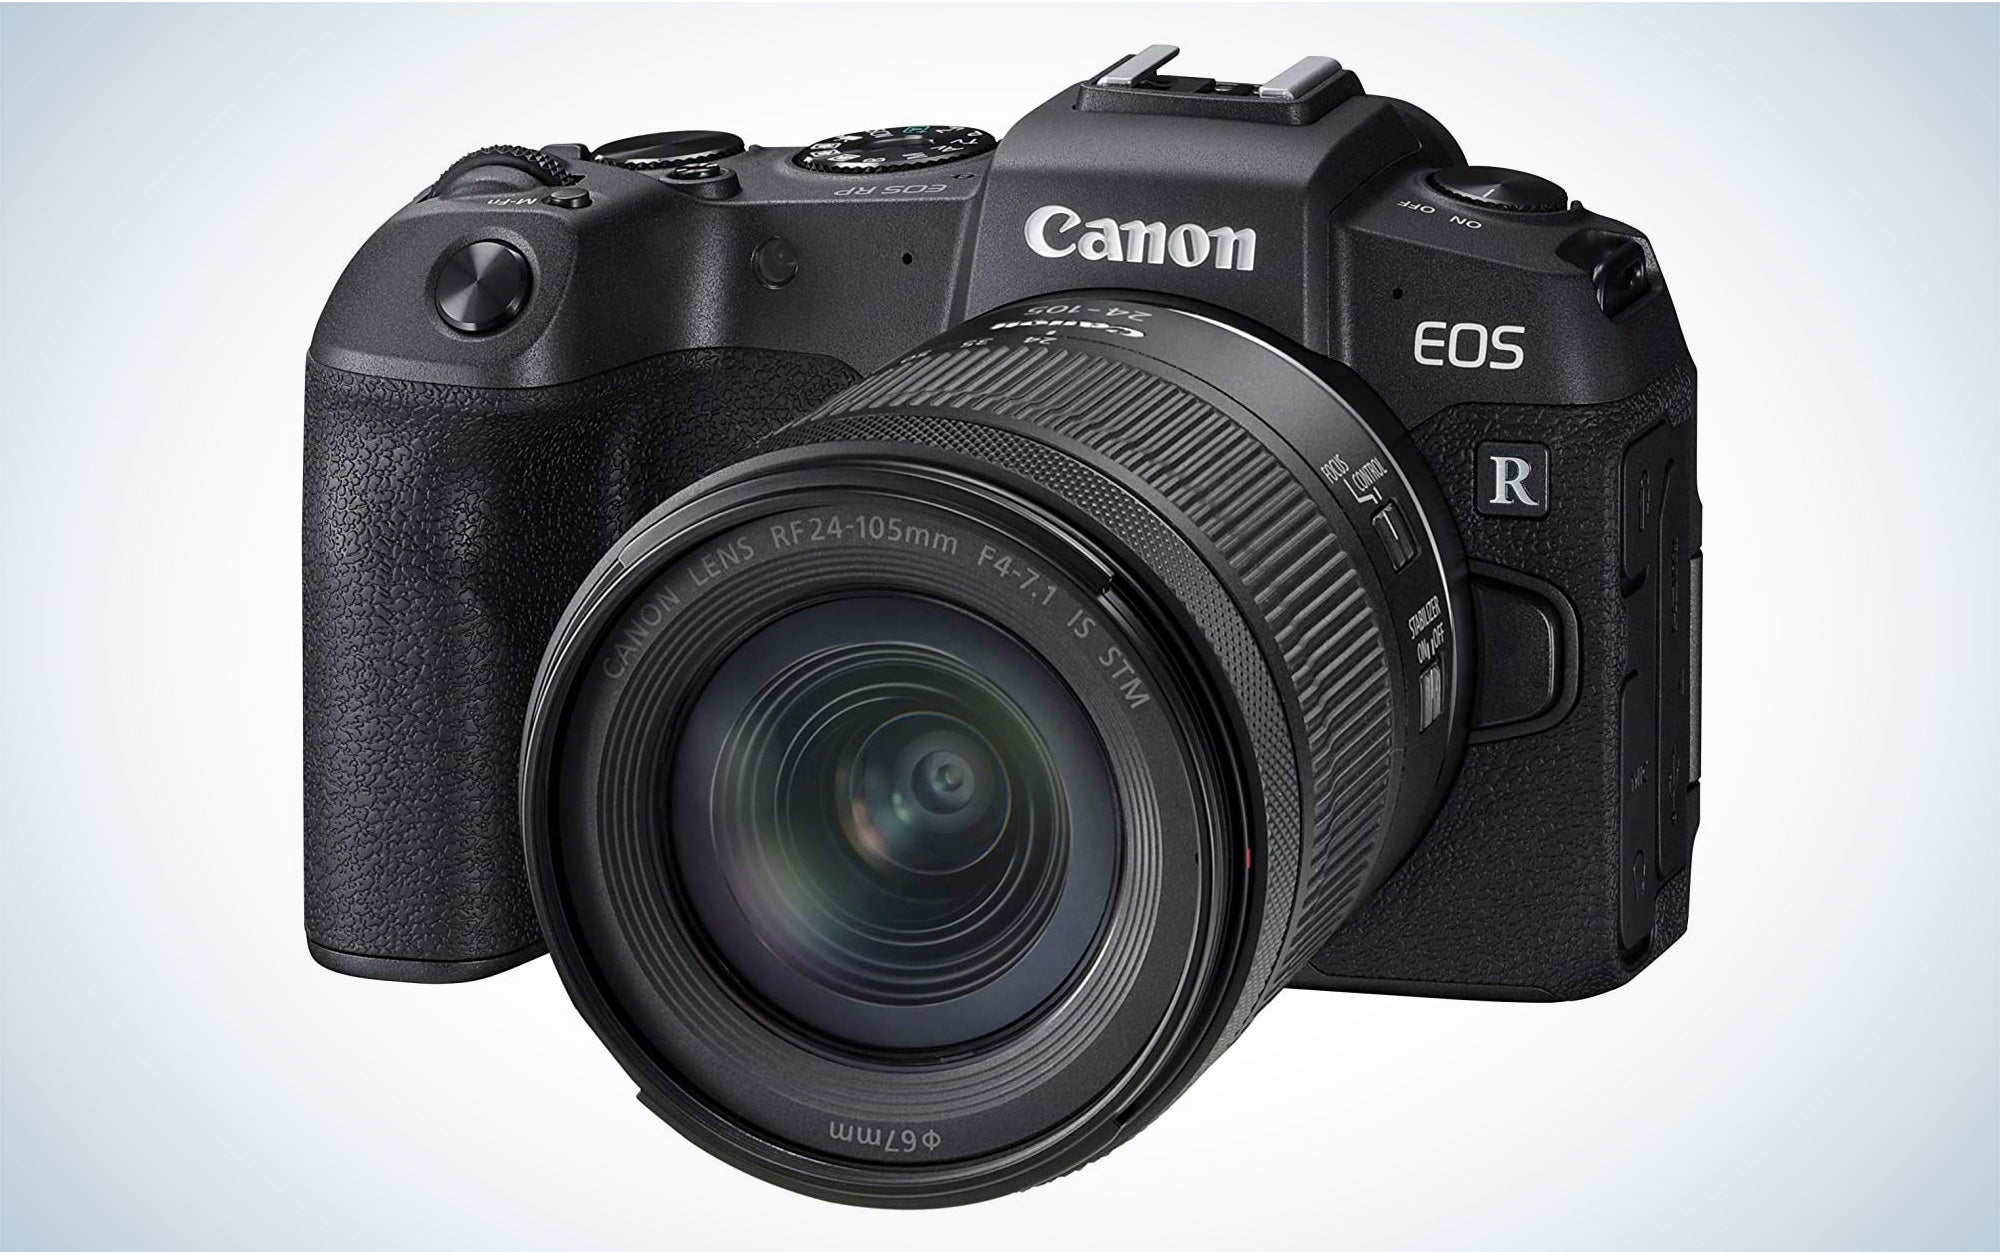 Best mirrorless camera for beginners: Canon RP